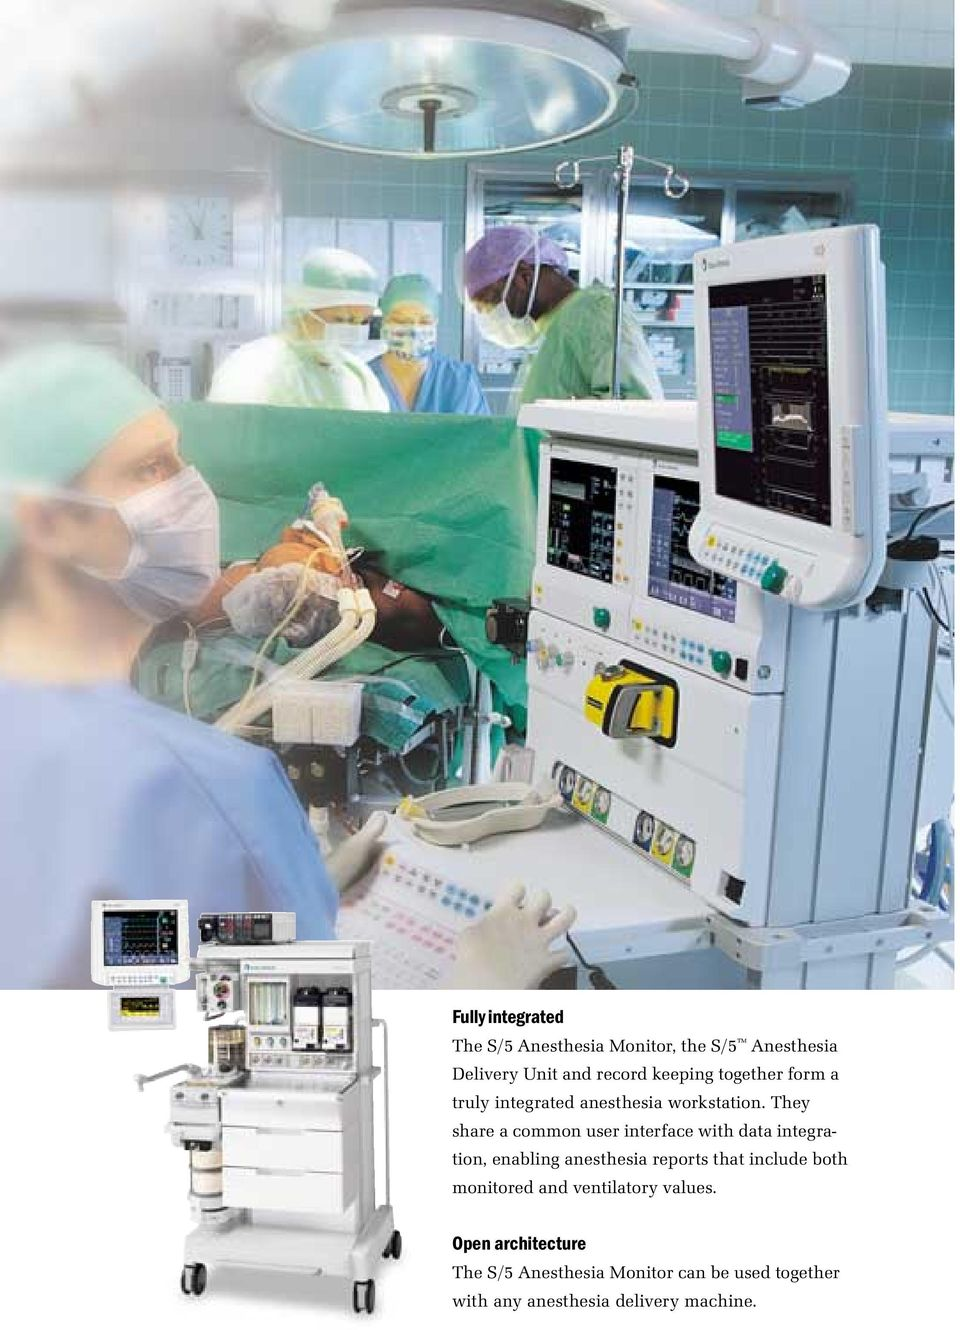 They share a common user interface with data integration, enabling anesthesia reports that include